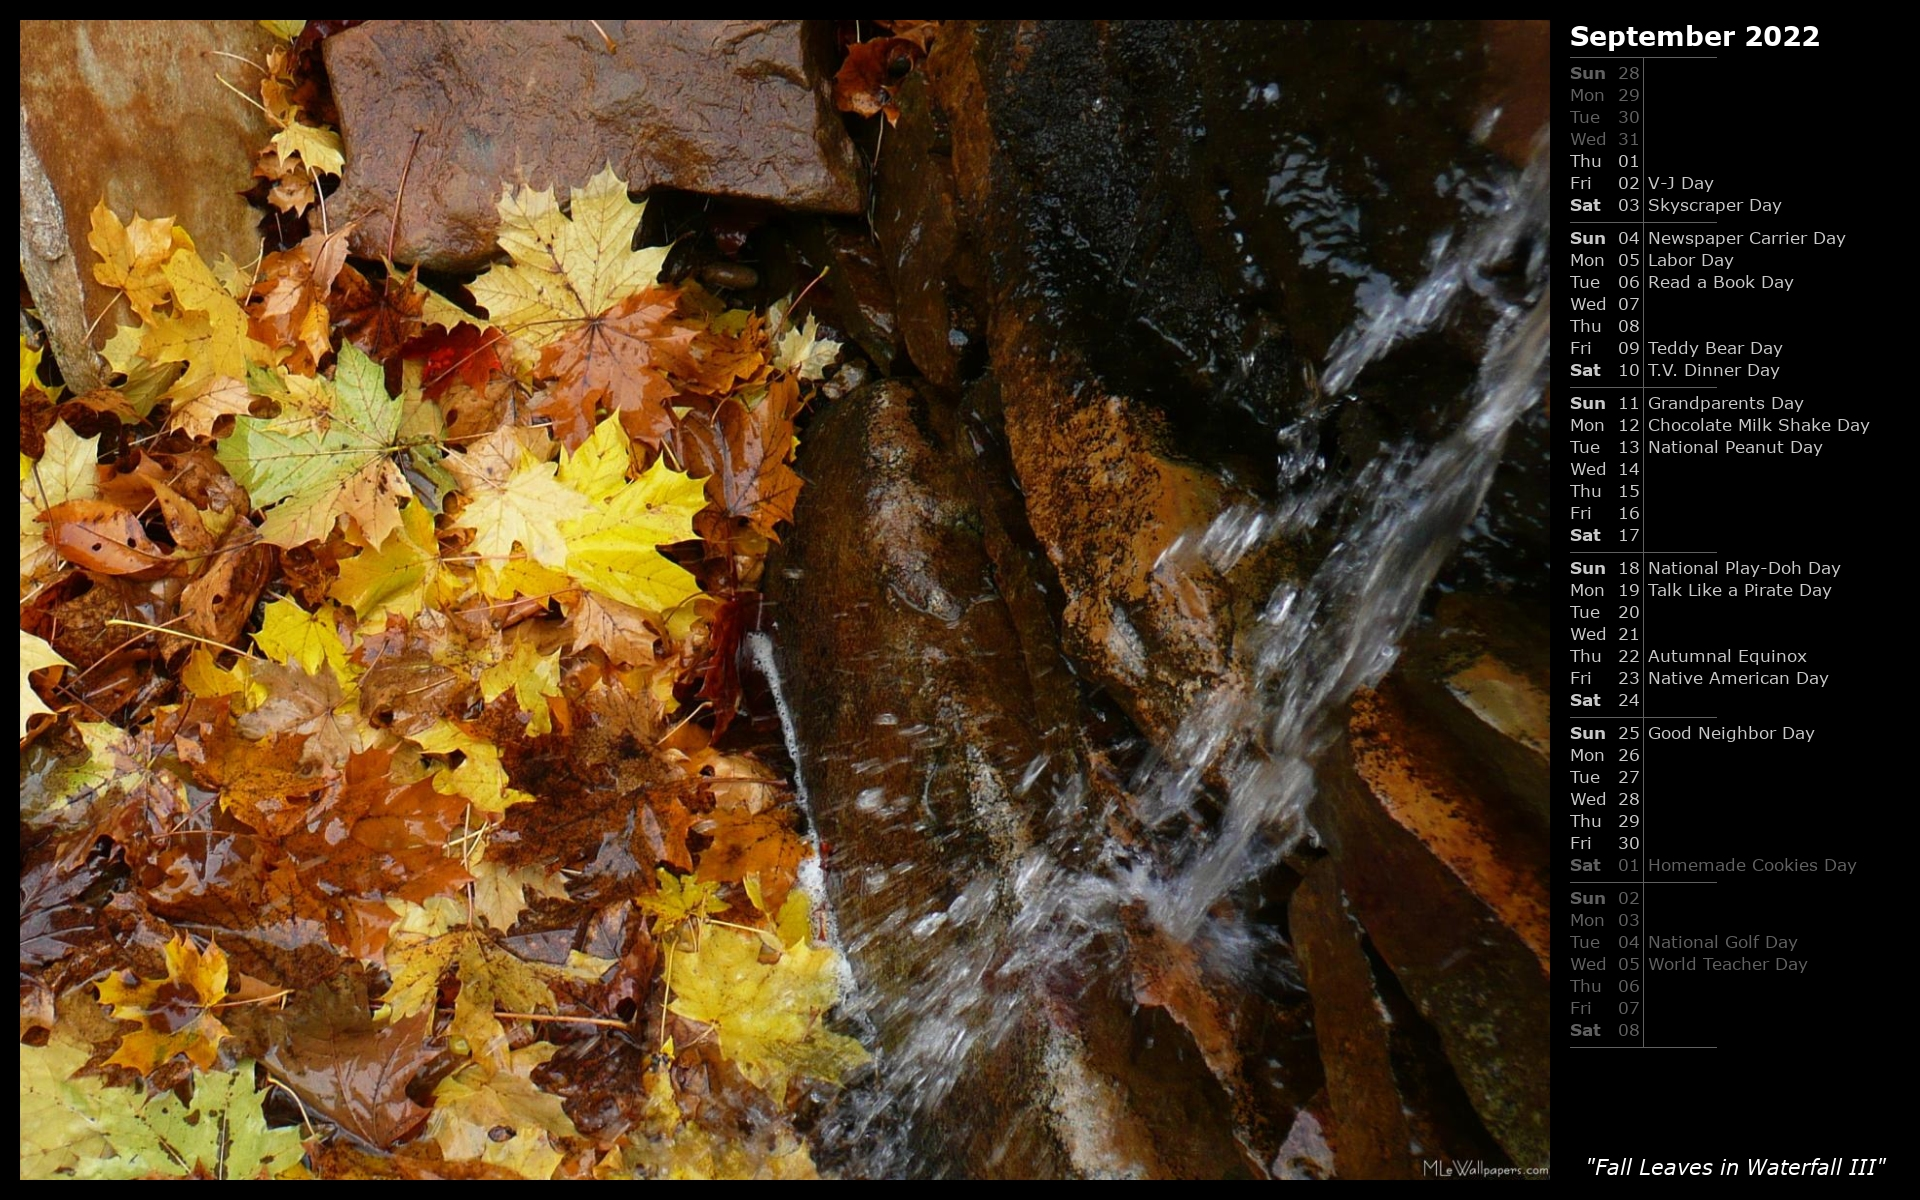 Fall Leaves In Waterfall III